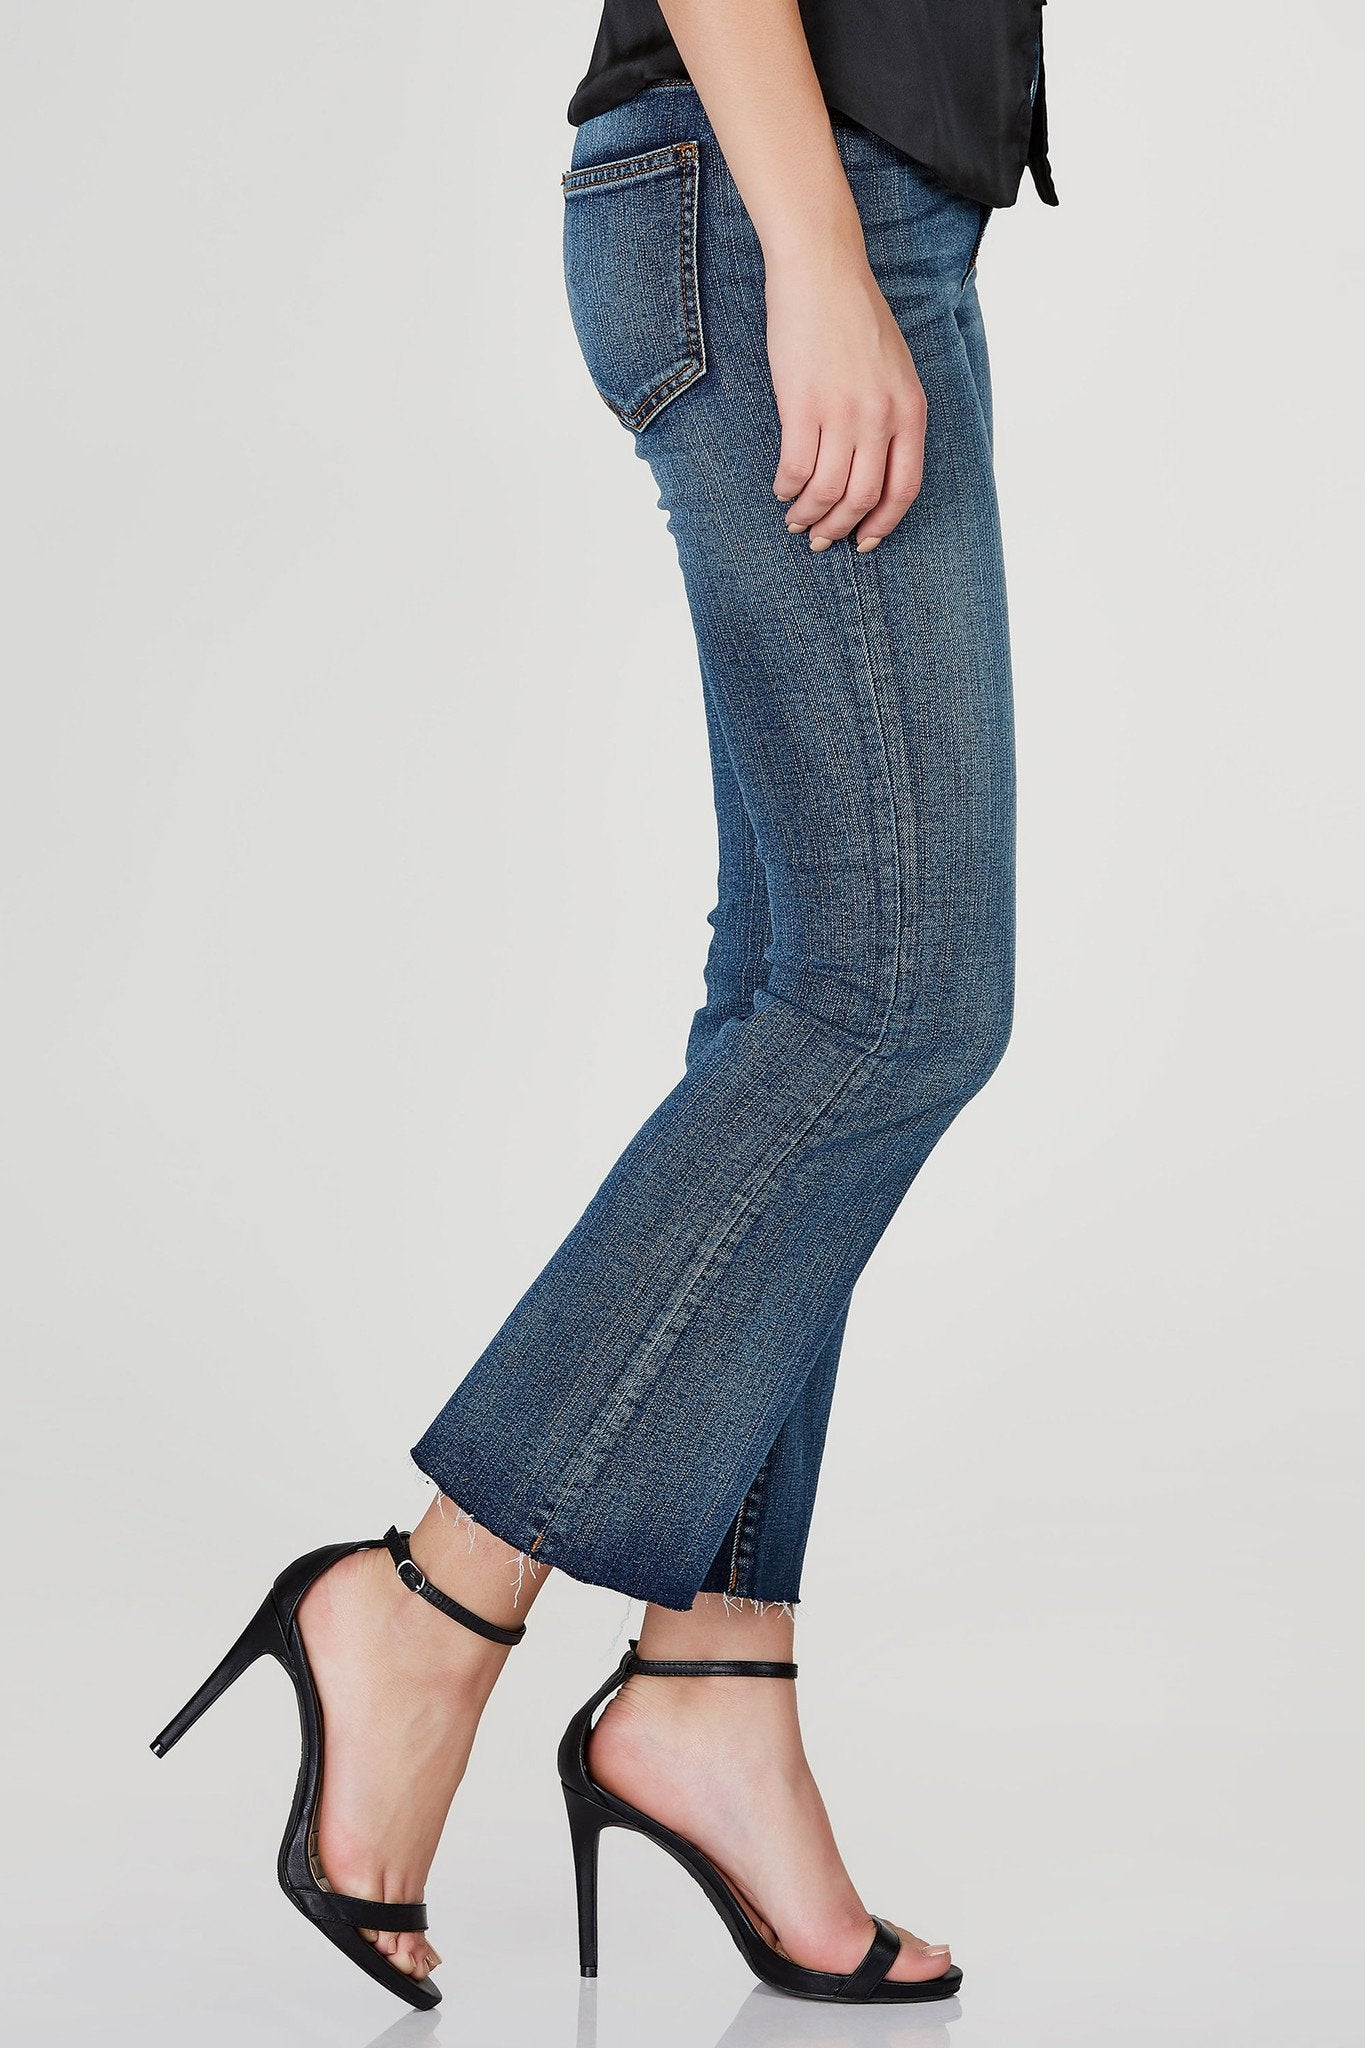 The flares are back! These awesome high rise denims feature the covetted raw hem with a trendy flared finish. Perfect medium wash with a comfortable, stretchy fit. Style with a graphic tee tucked in with sneakers for a street-style look!